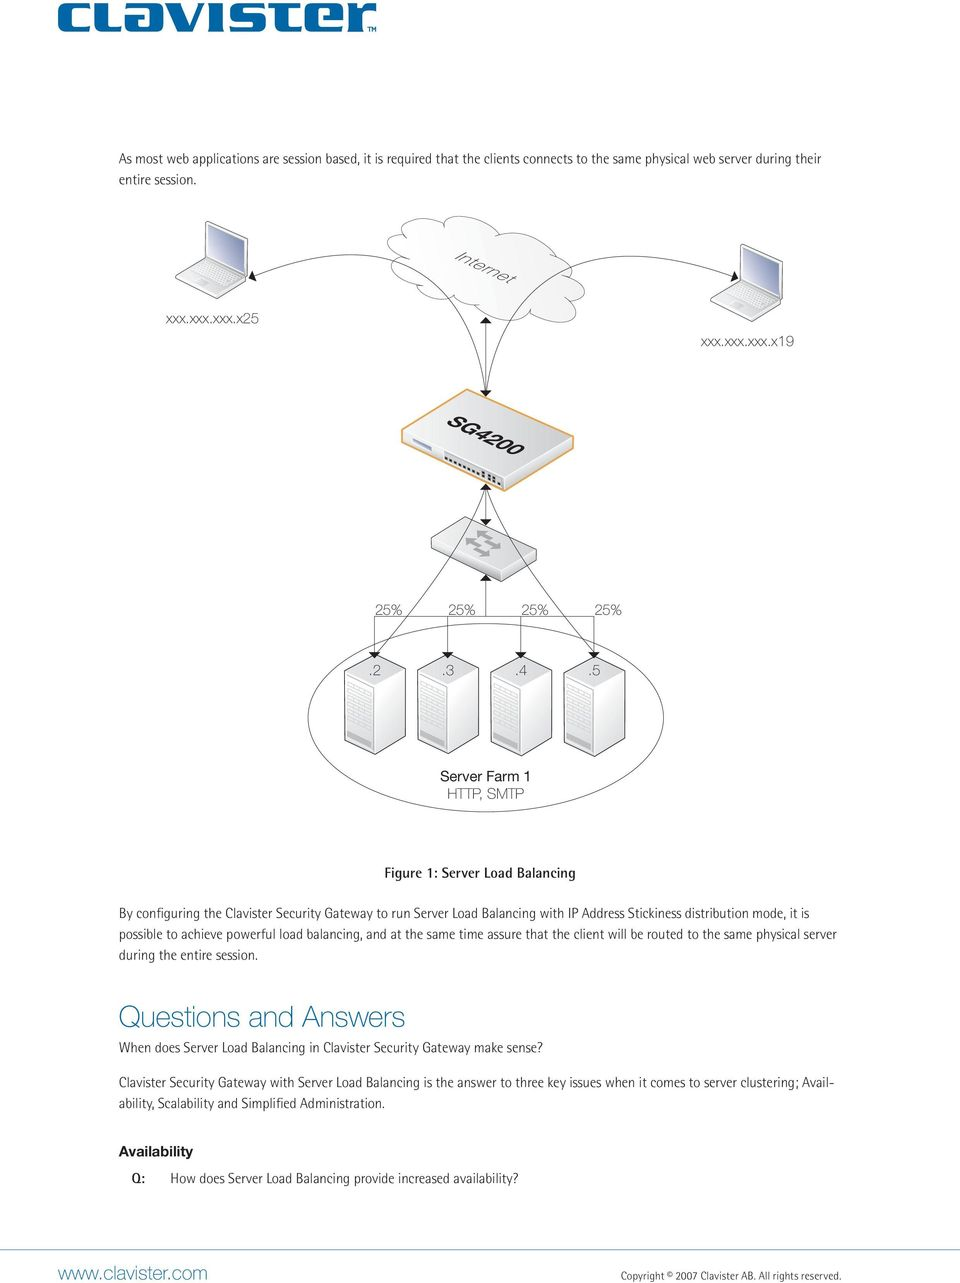 5 Server Farm 1 HTTP, SMTP Figure 1: Server Load Balancing By configuring the Clavister Security Gateway to run Server Load Balancing with IP Address Stickiness distribution mode, it is possible to